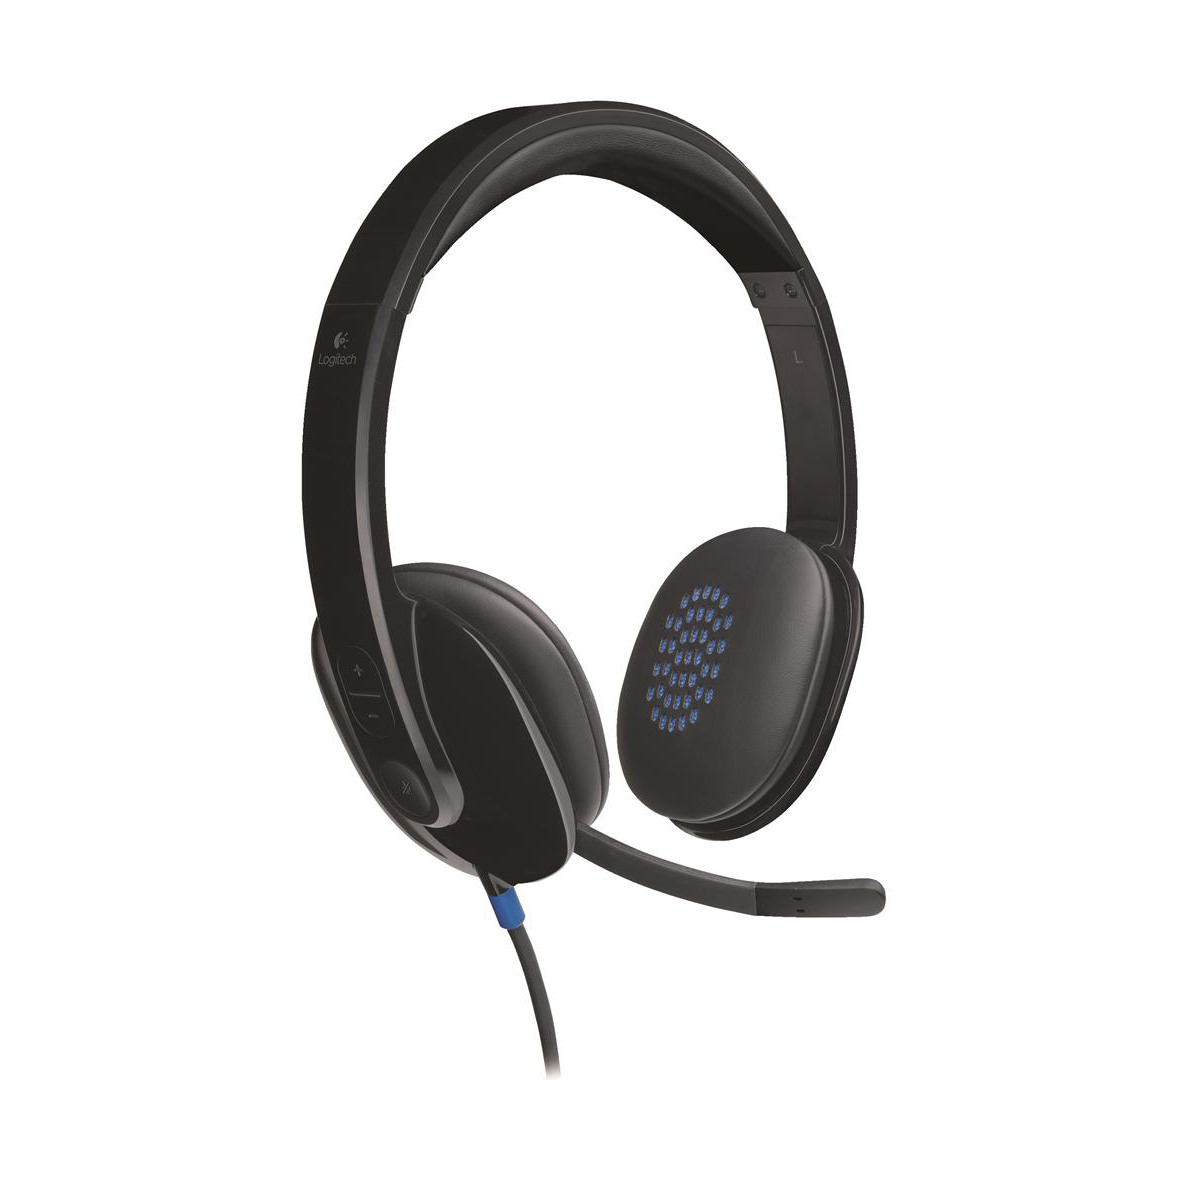 Headphones Logitech H540 Headset USB Laser-tuned Speakers with On-ear Controls Ref 981-000480